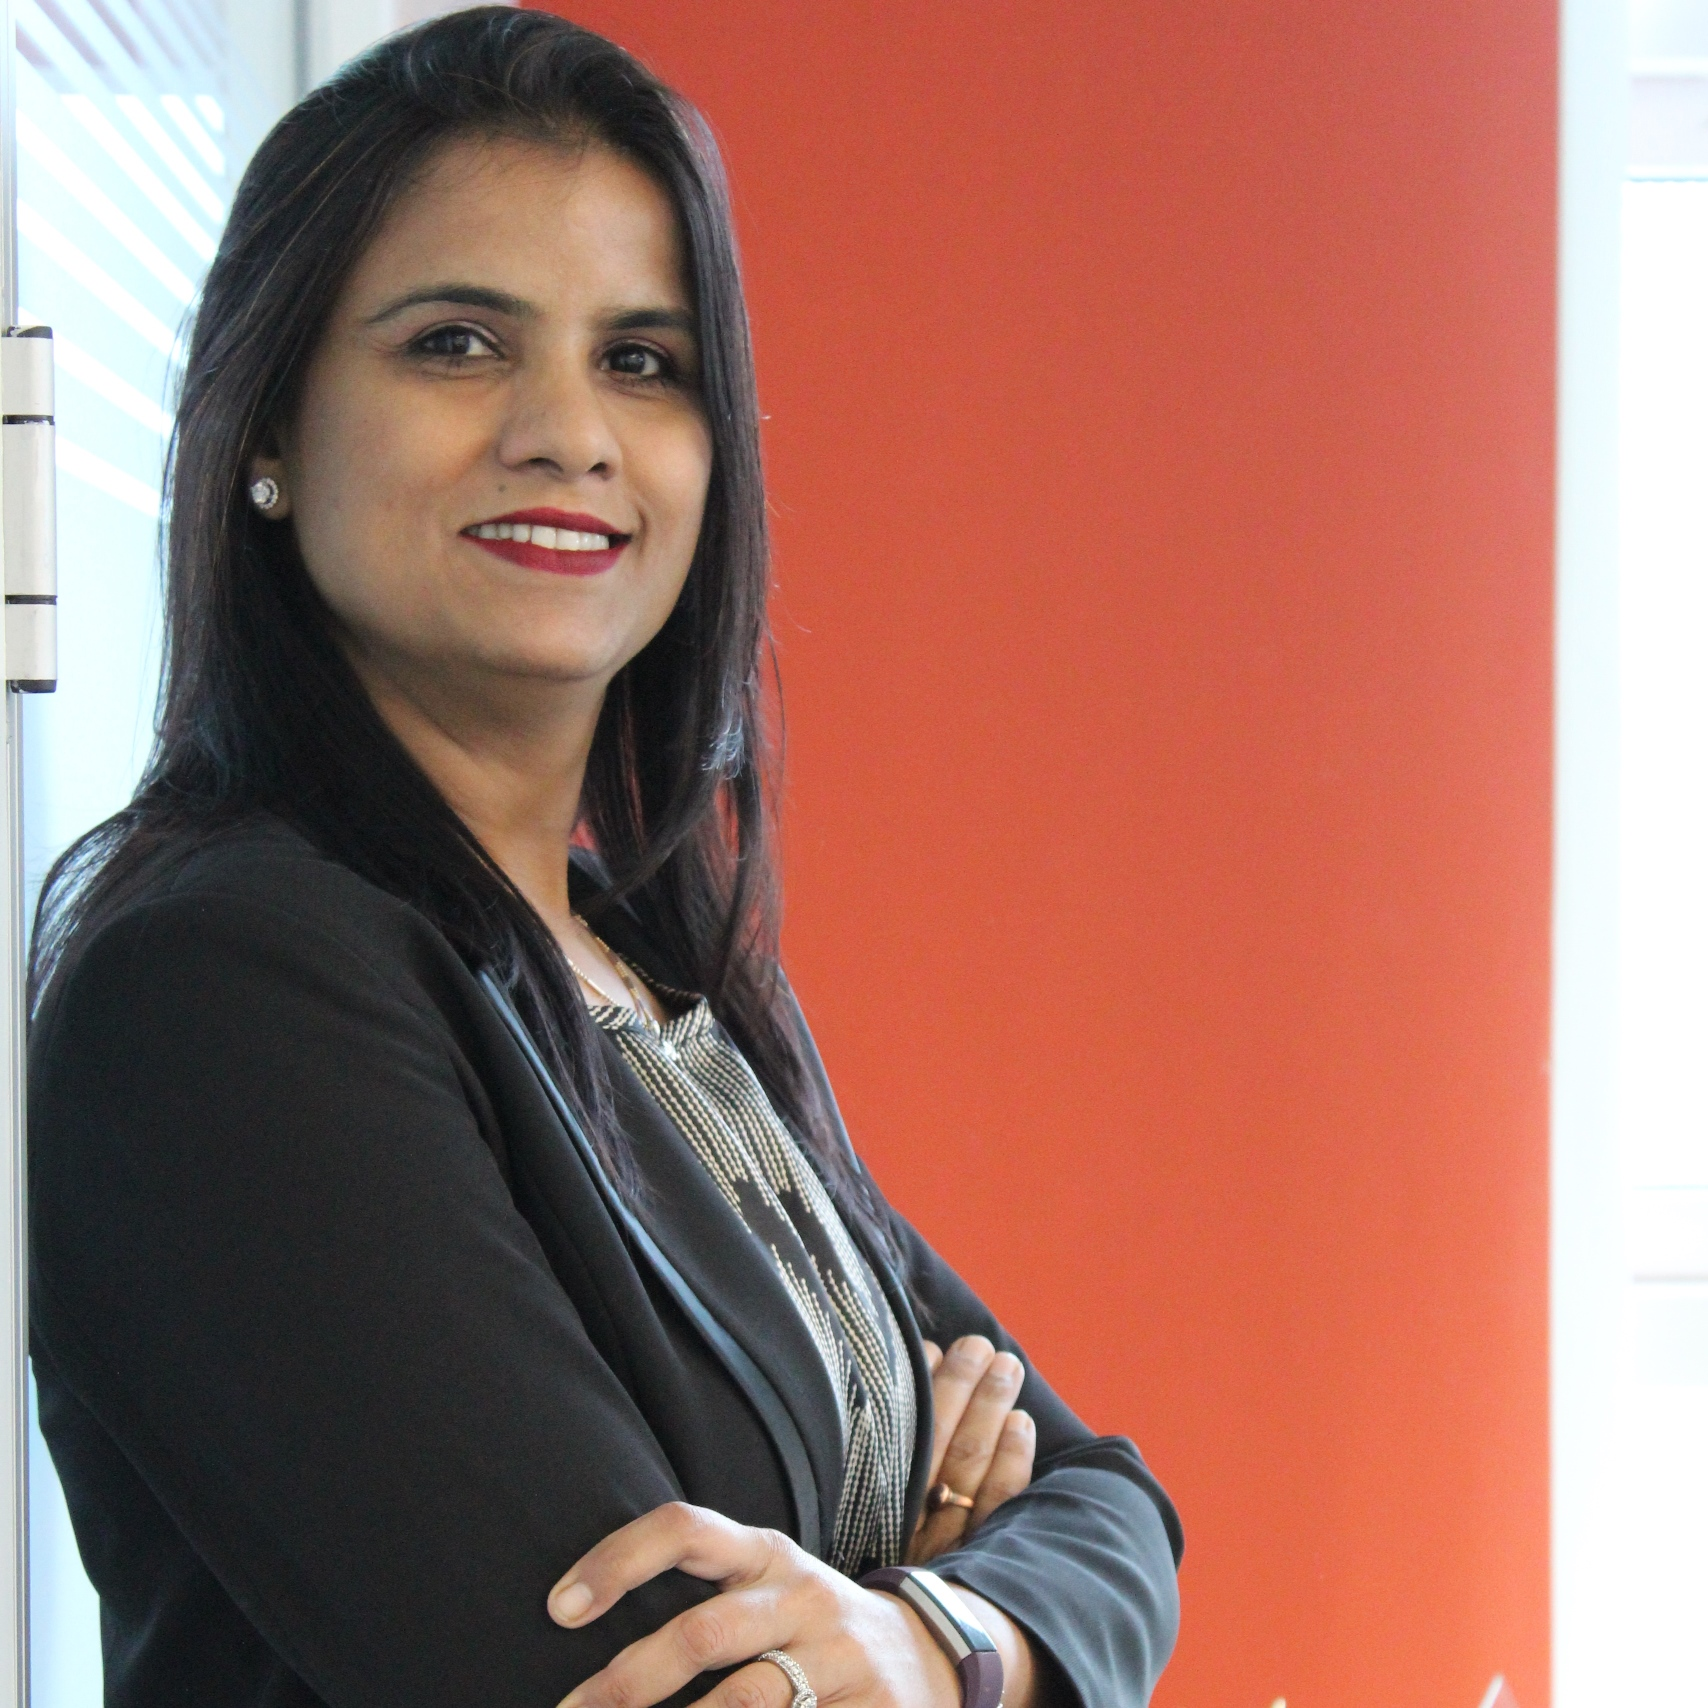 Leadership Insights: Priyanka Anand, Vice President and Head of Human Resources, Ericsson India Global Services